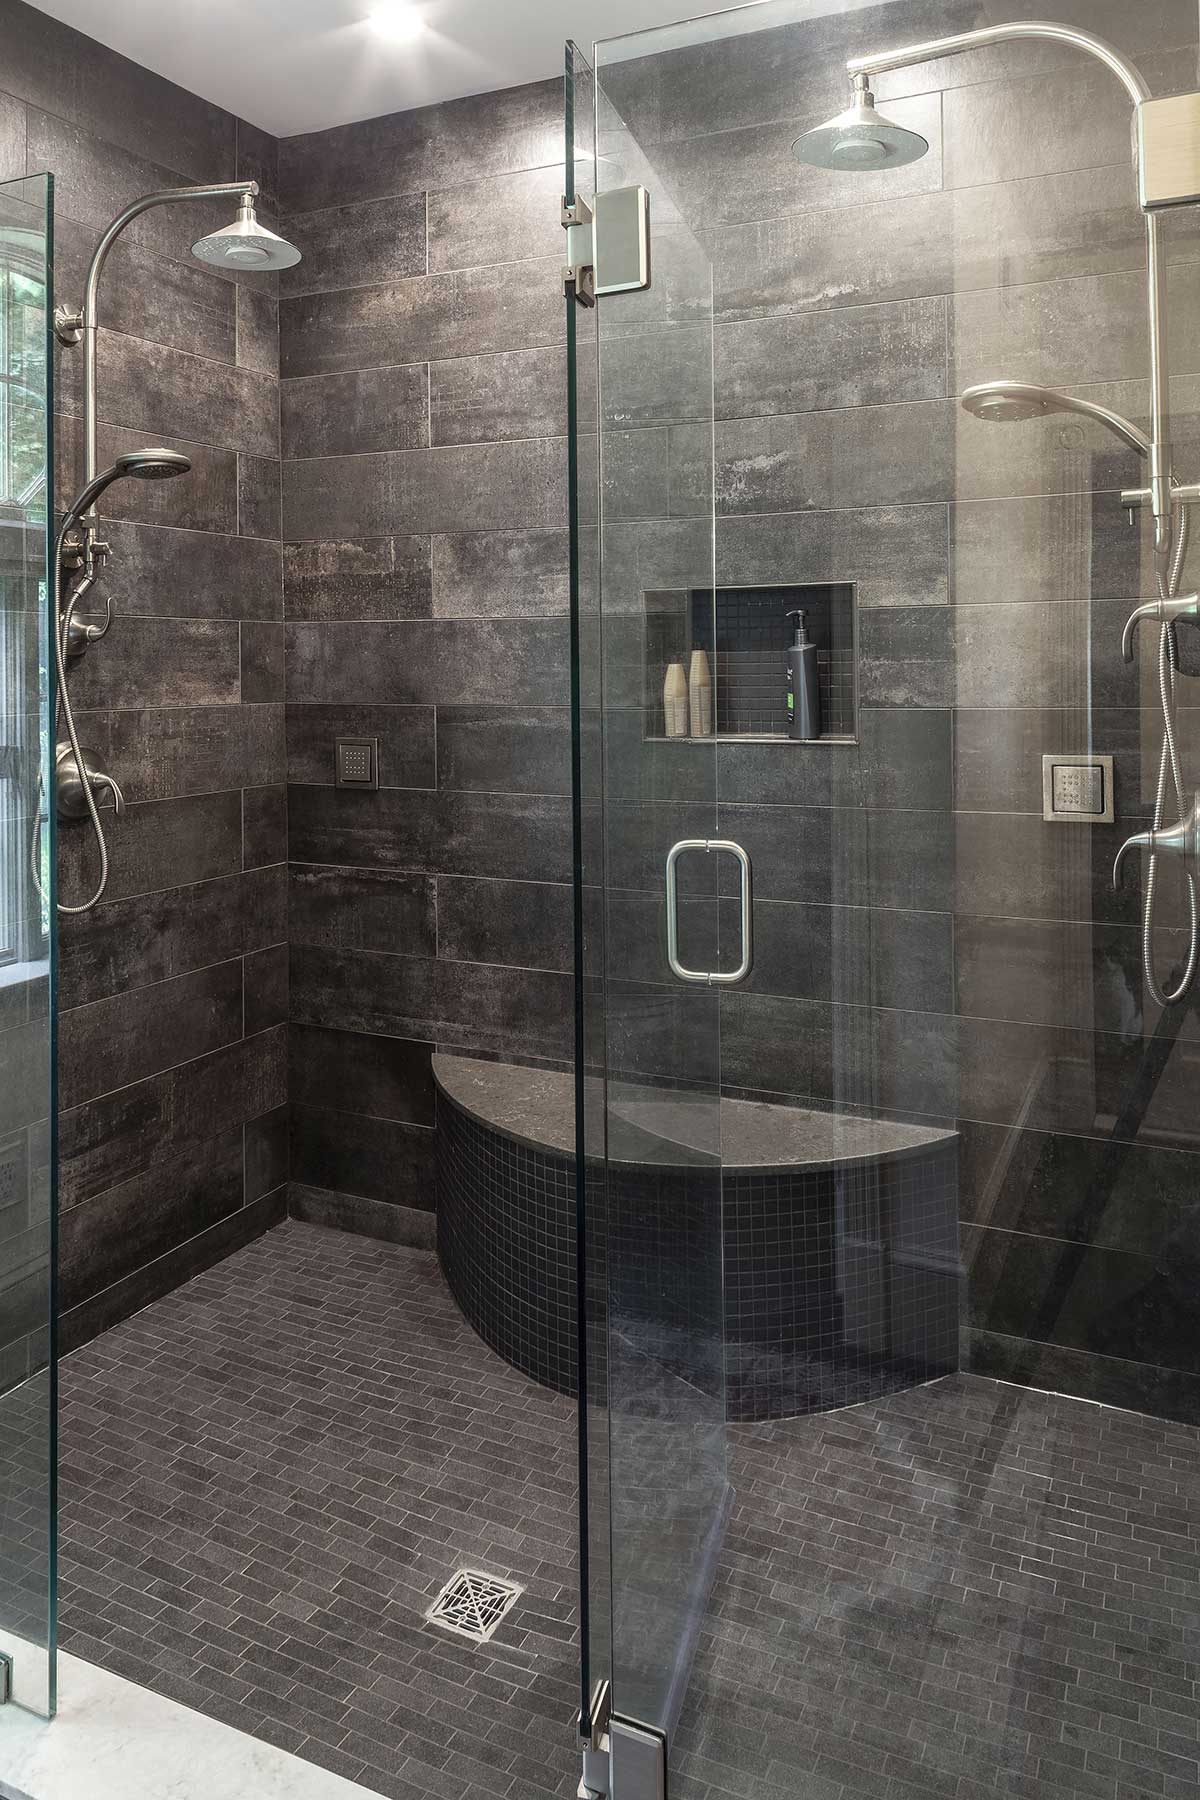 Luxurious multi-head walk-in shower with dark tile walls and floor